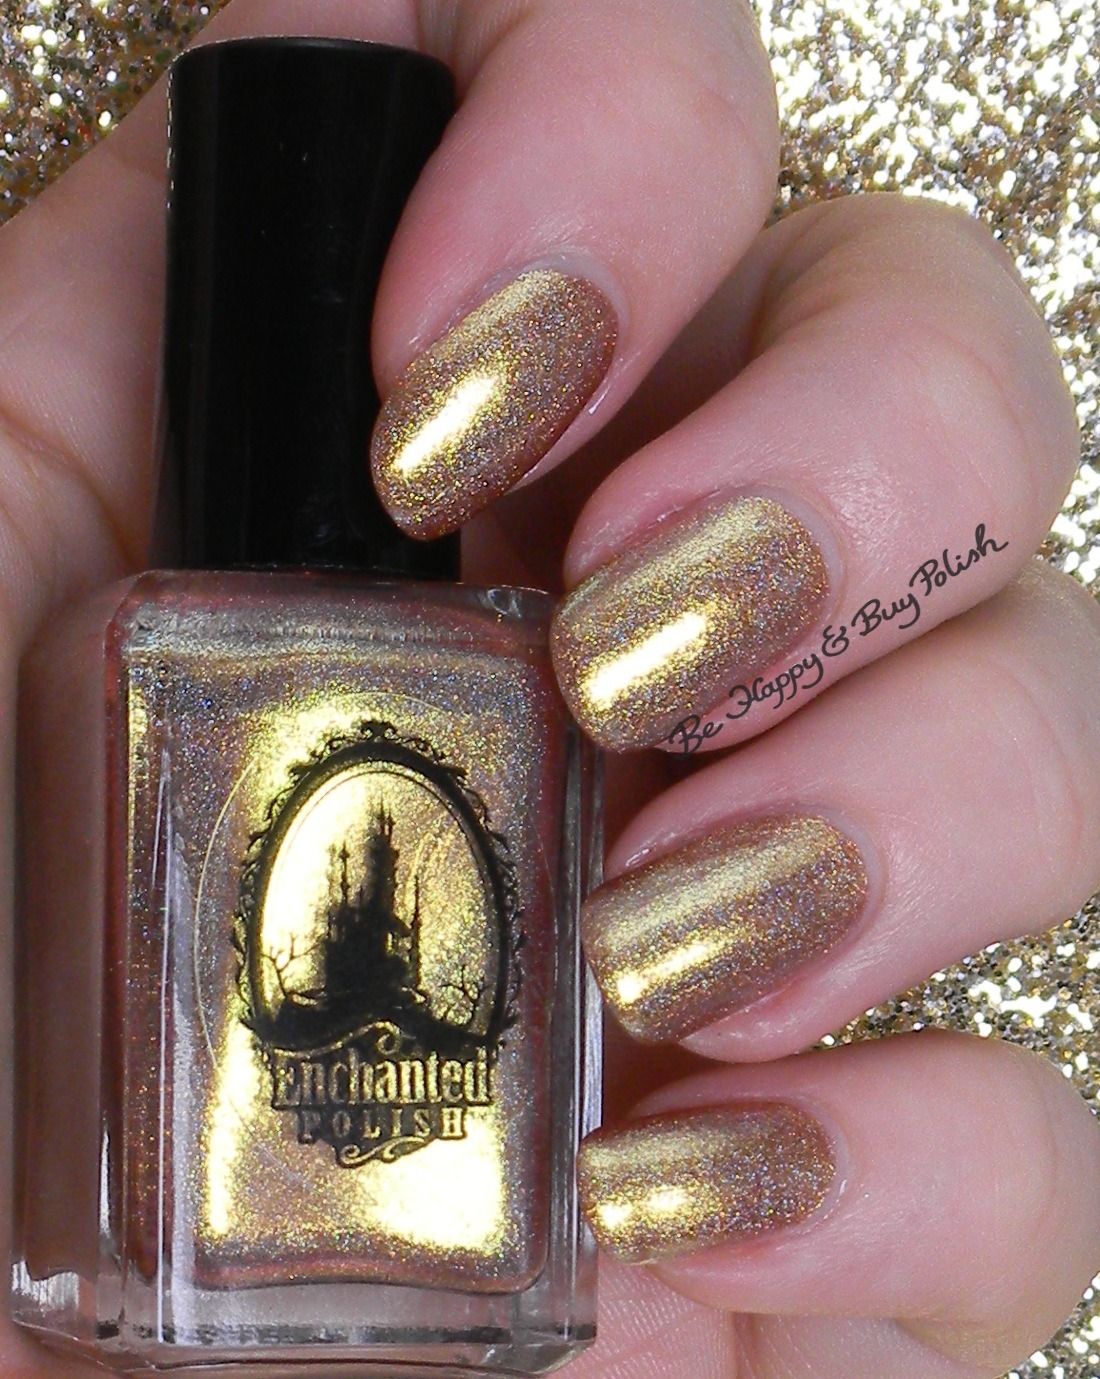 Enchanted Polish Good Life